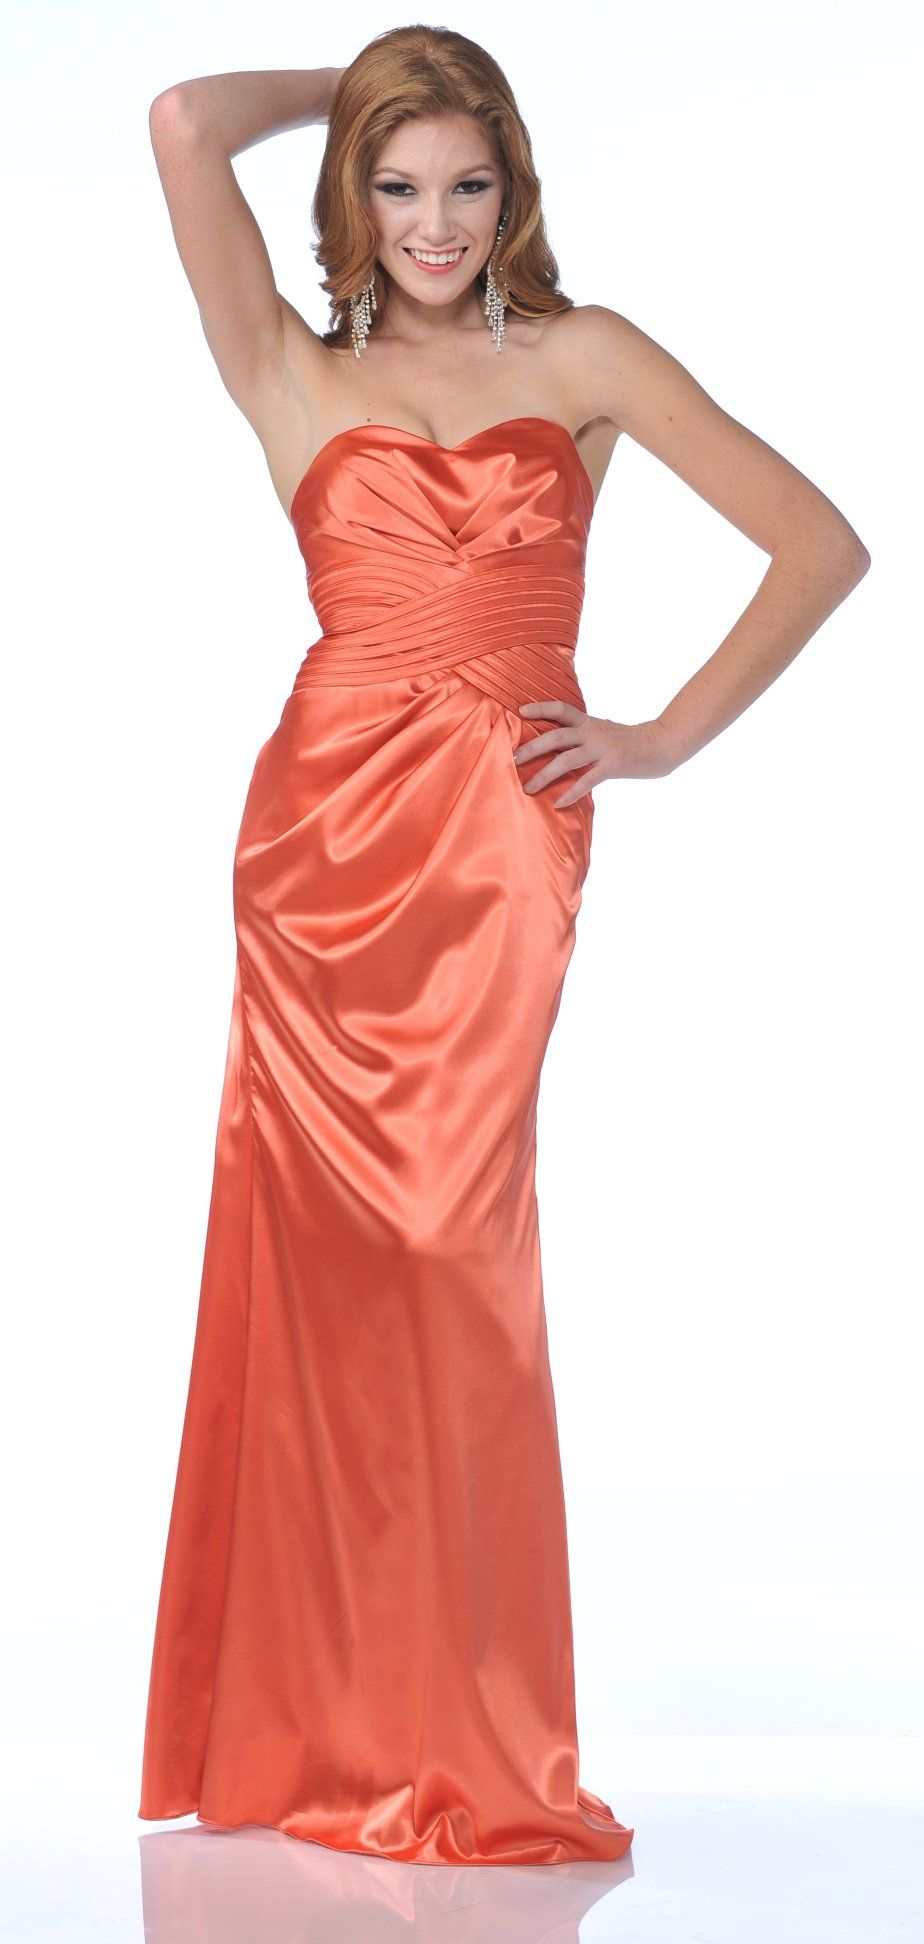 Beautiful satin orange prom dress strapless full length formal